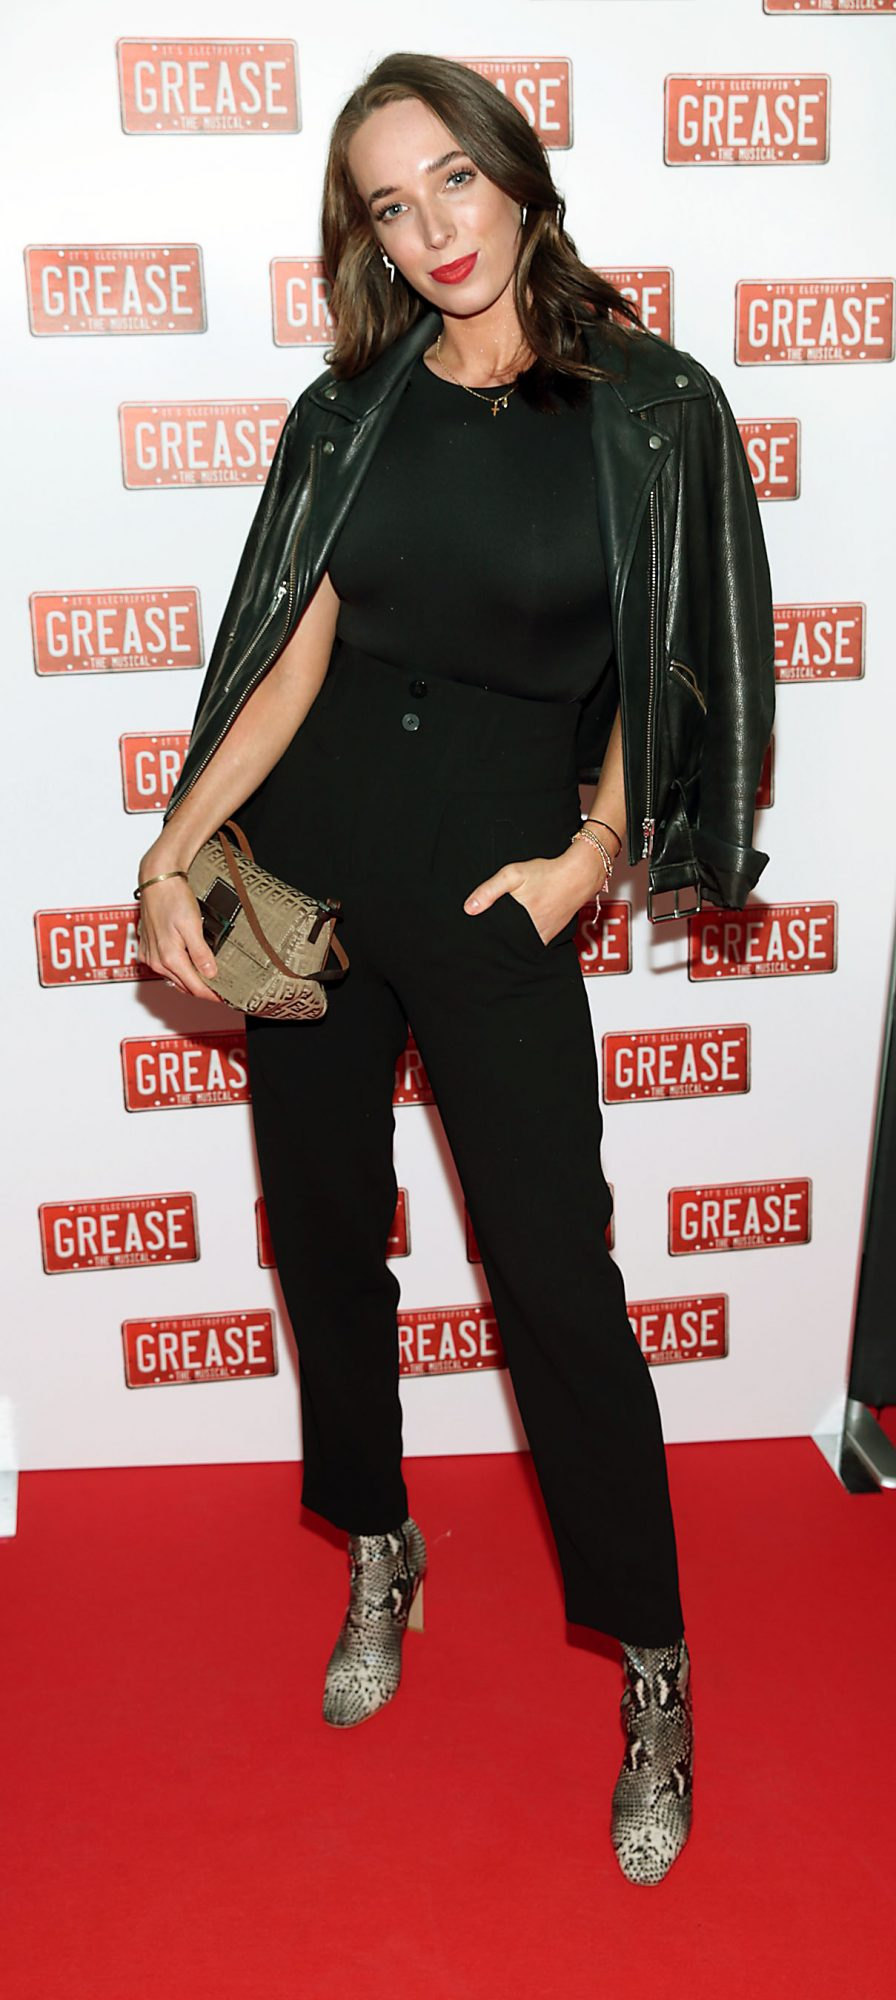 Ciara O Doherty pictured at the opening night of the musical Grease at the Bord Gais Energy Theatre, Dublin. Pic: Brian McEvoy